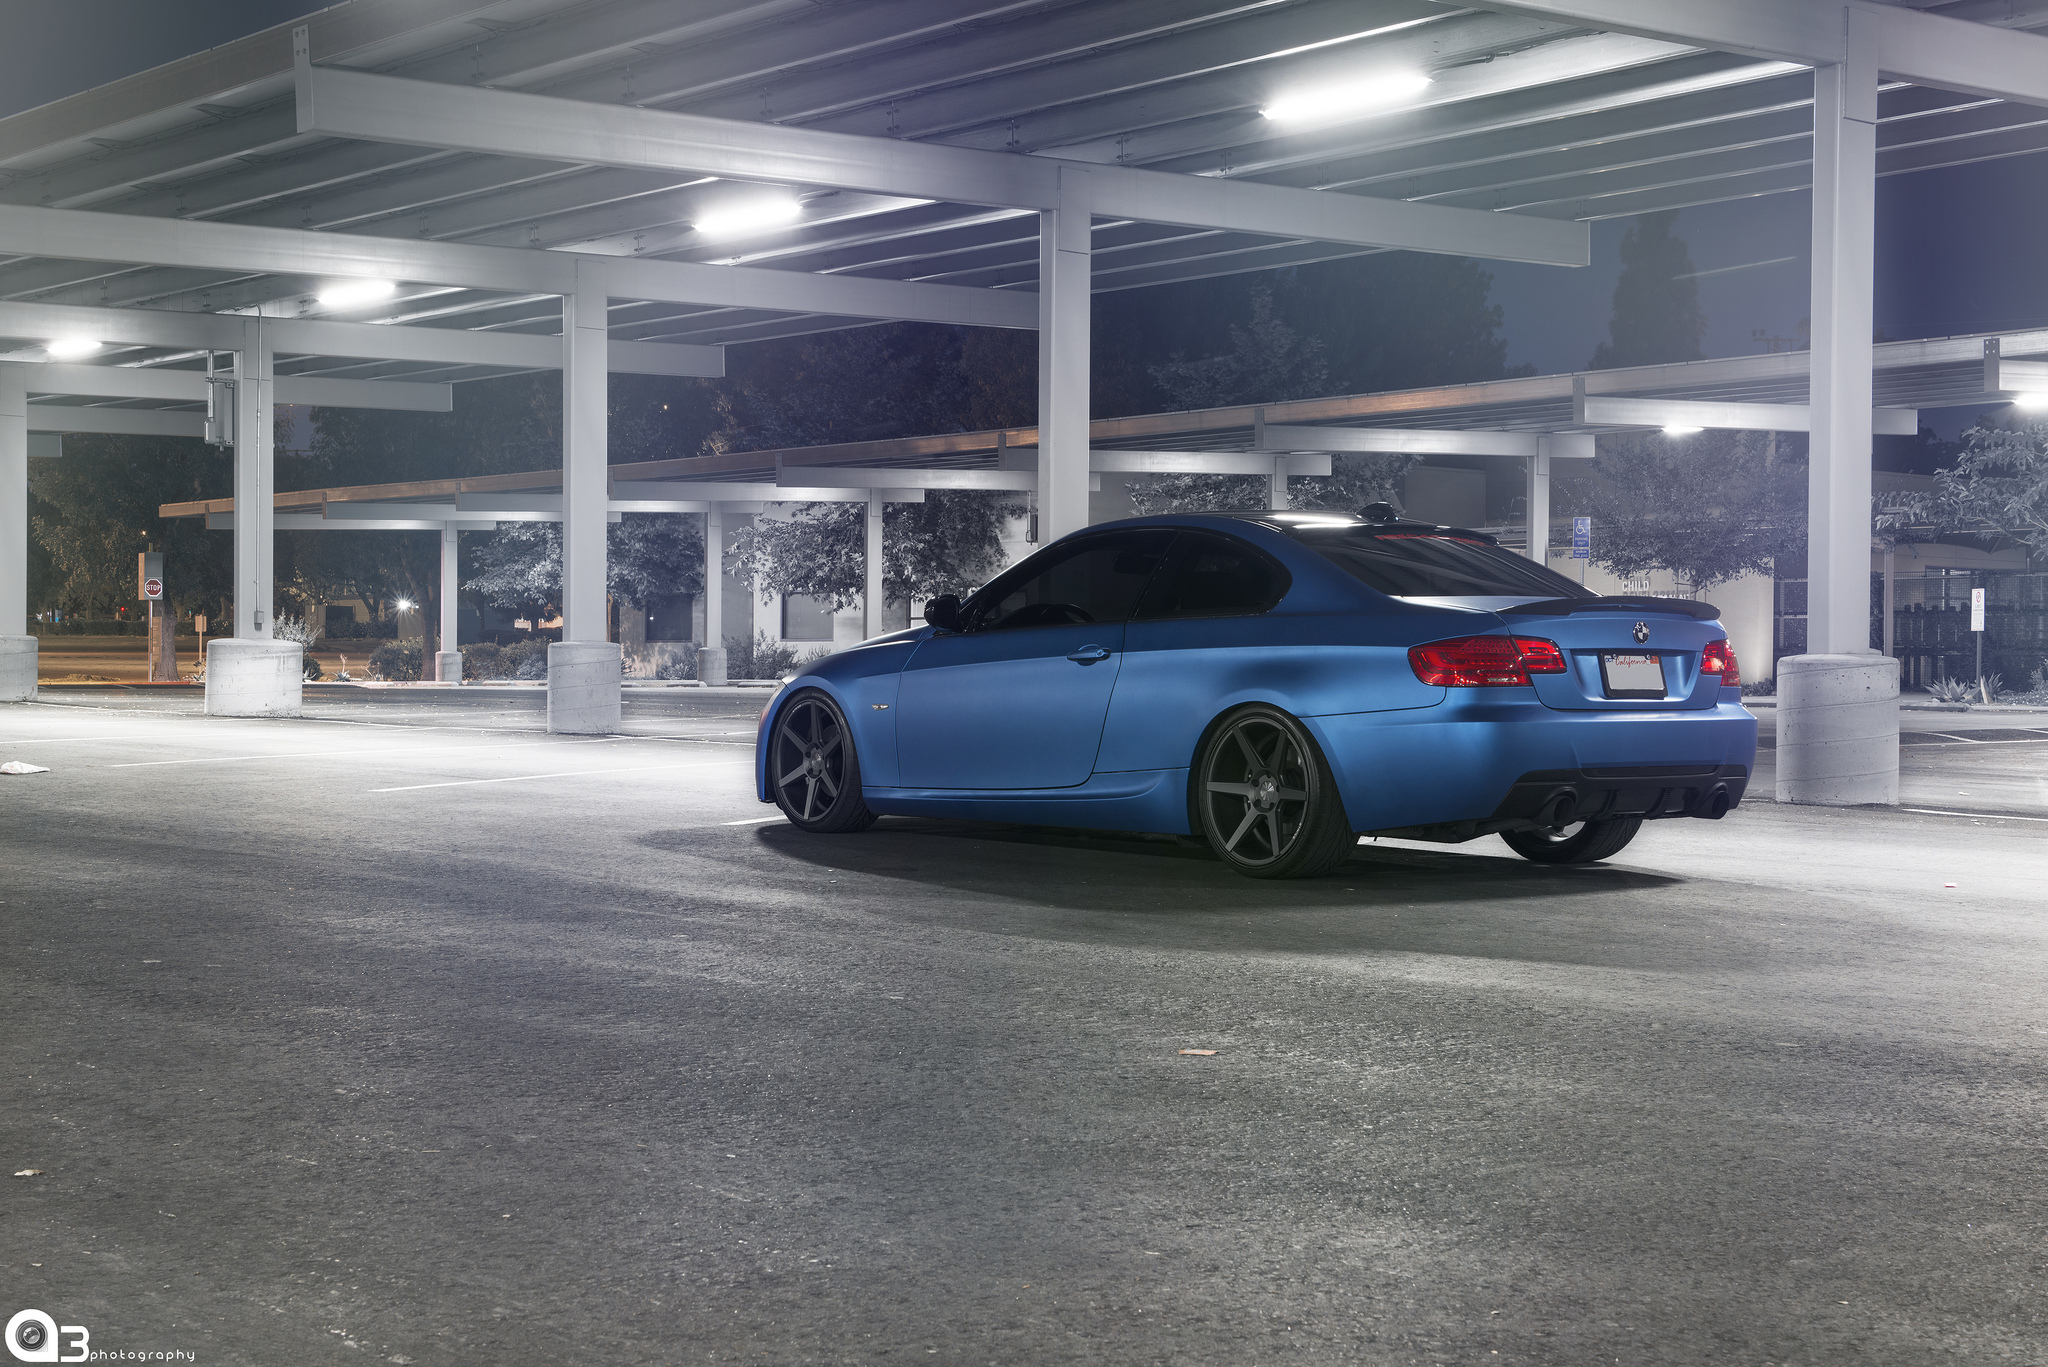 Stance Wheels SС-6 Slate Grey on Matte Blue BMW M3